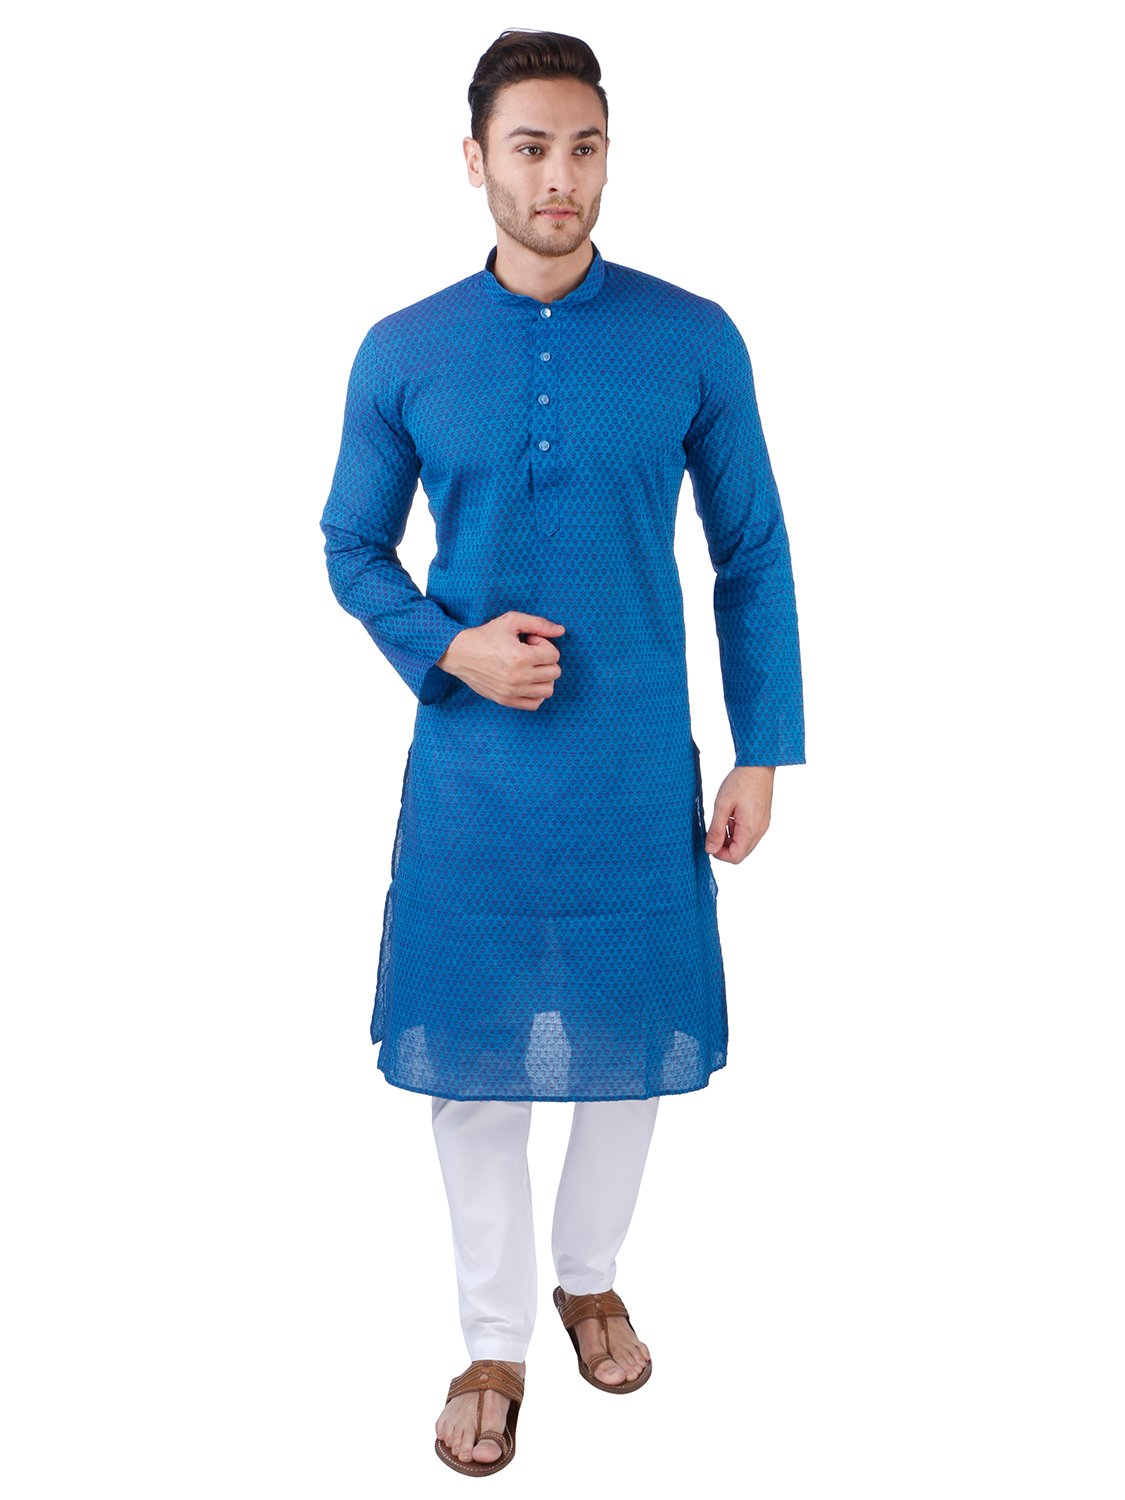 Rajubhai Hargovindas Men's Woven Floral Design Handloom Cotton Kurta